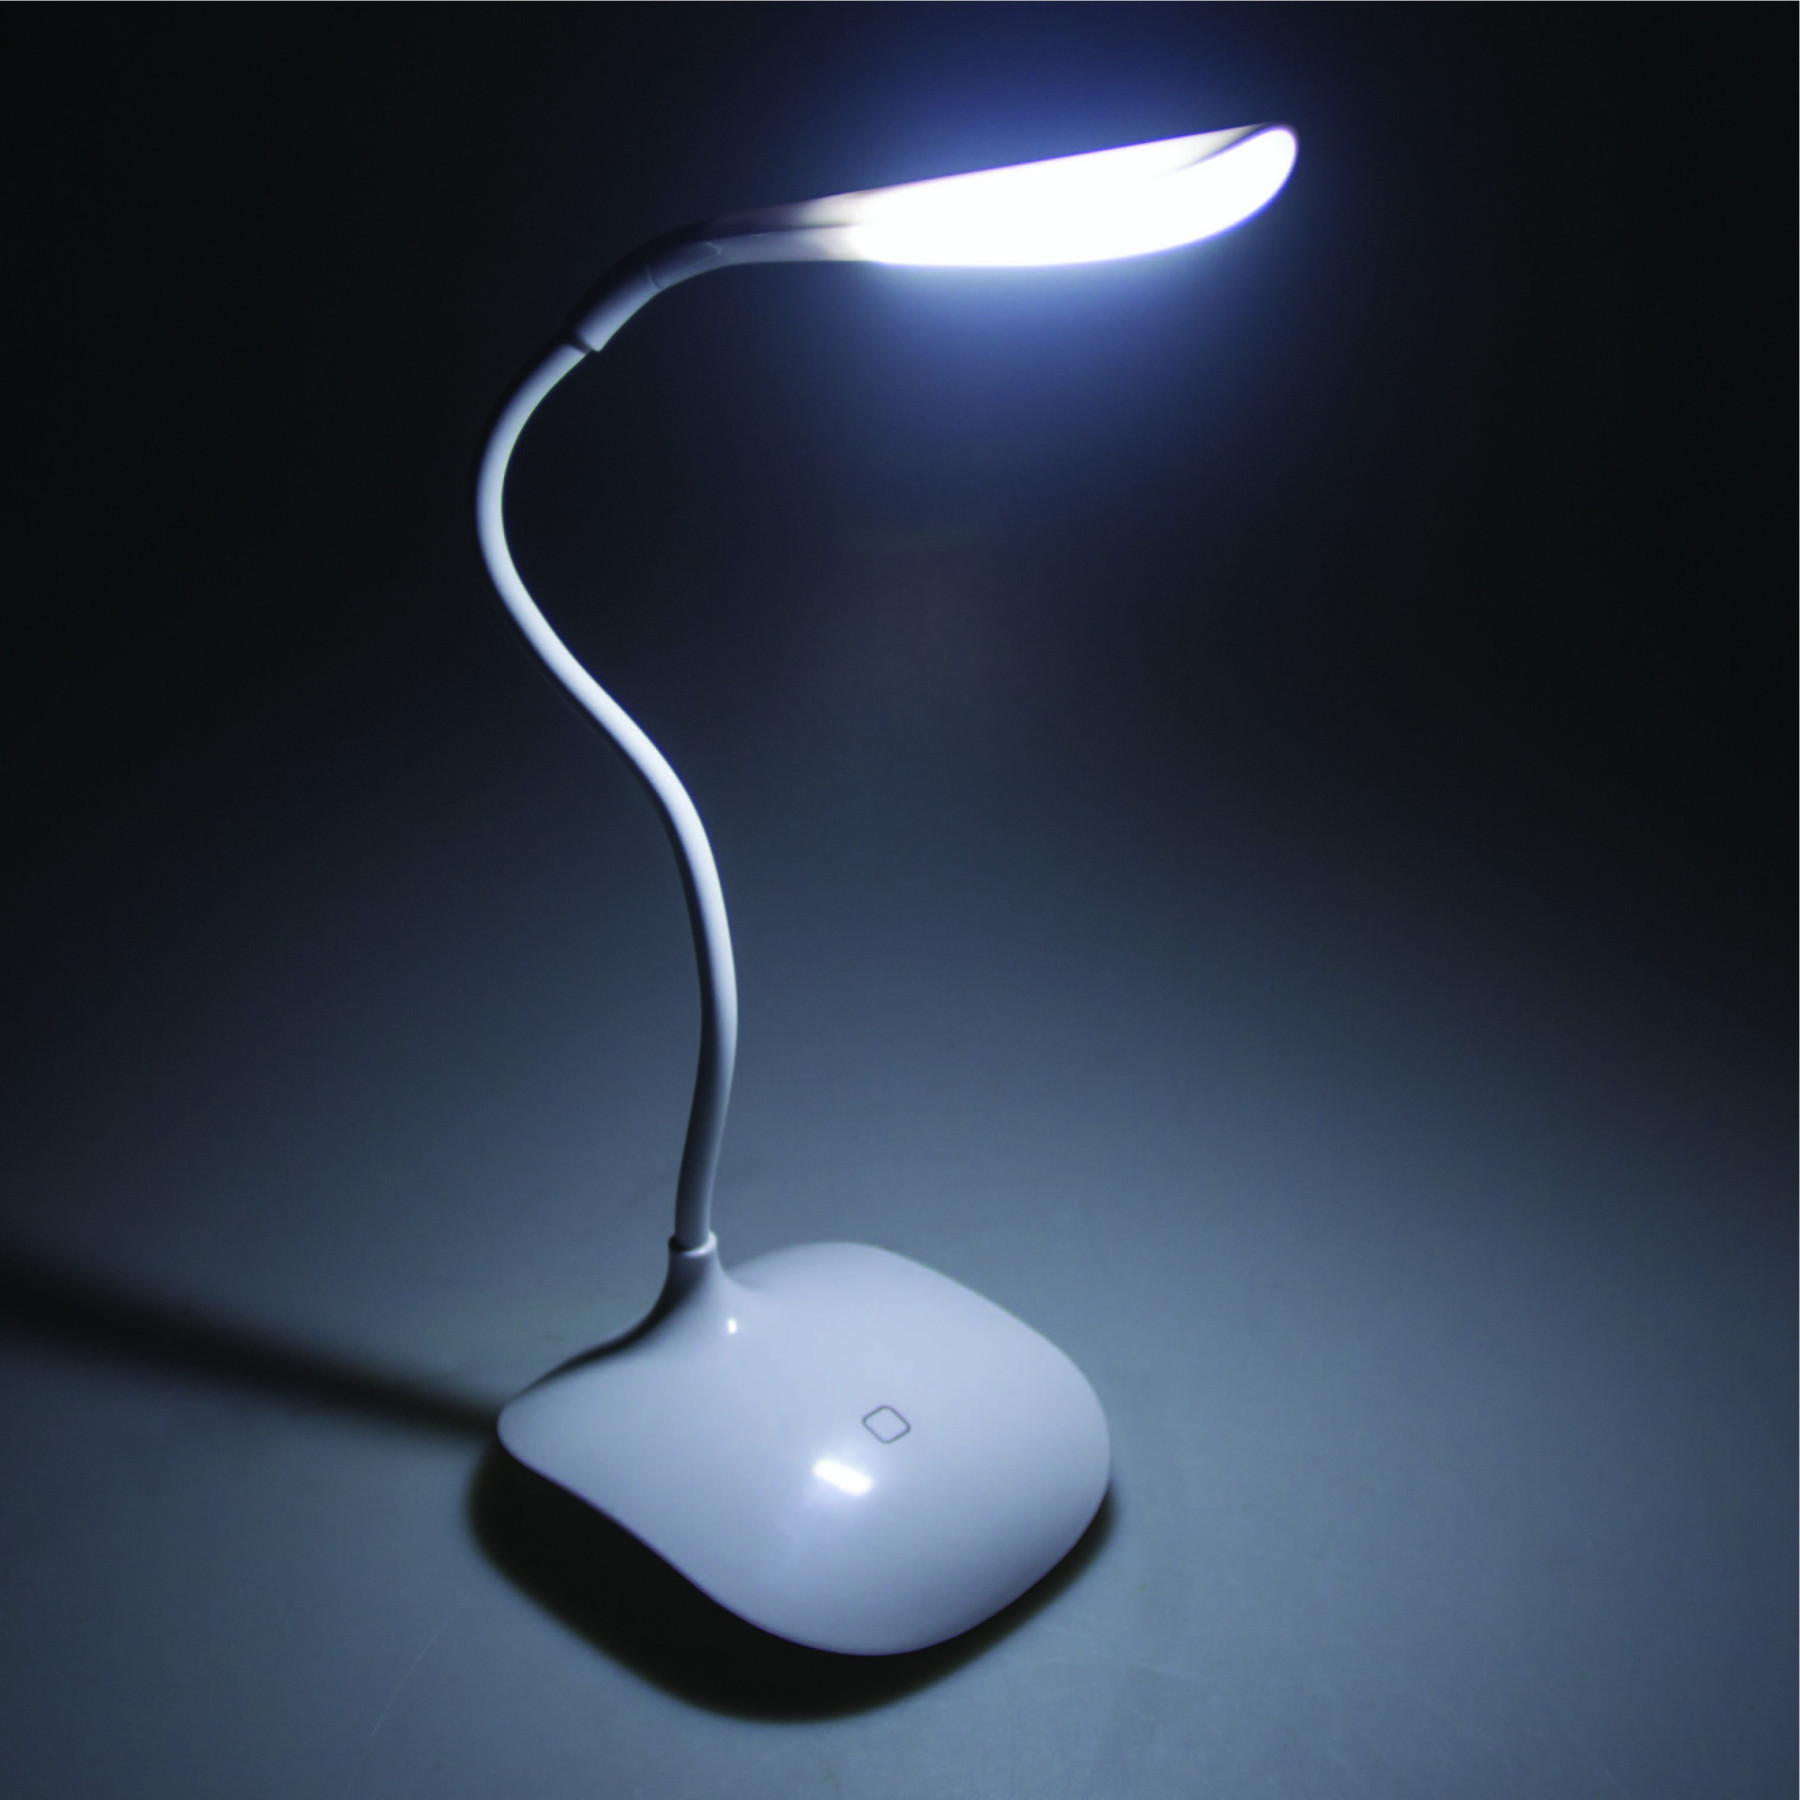 Best ideas about Bright Desk Lamp . Save or Pin Super Bright 14 LED Flexible Inspection & Table Desk Lamp Now.